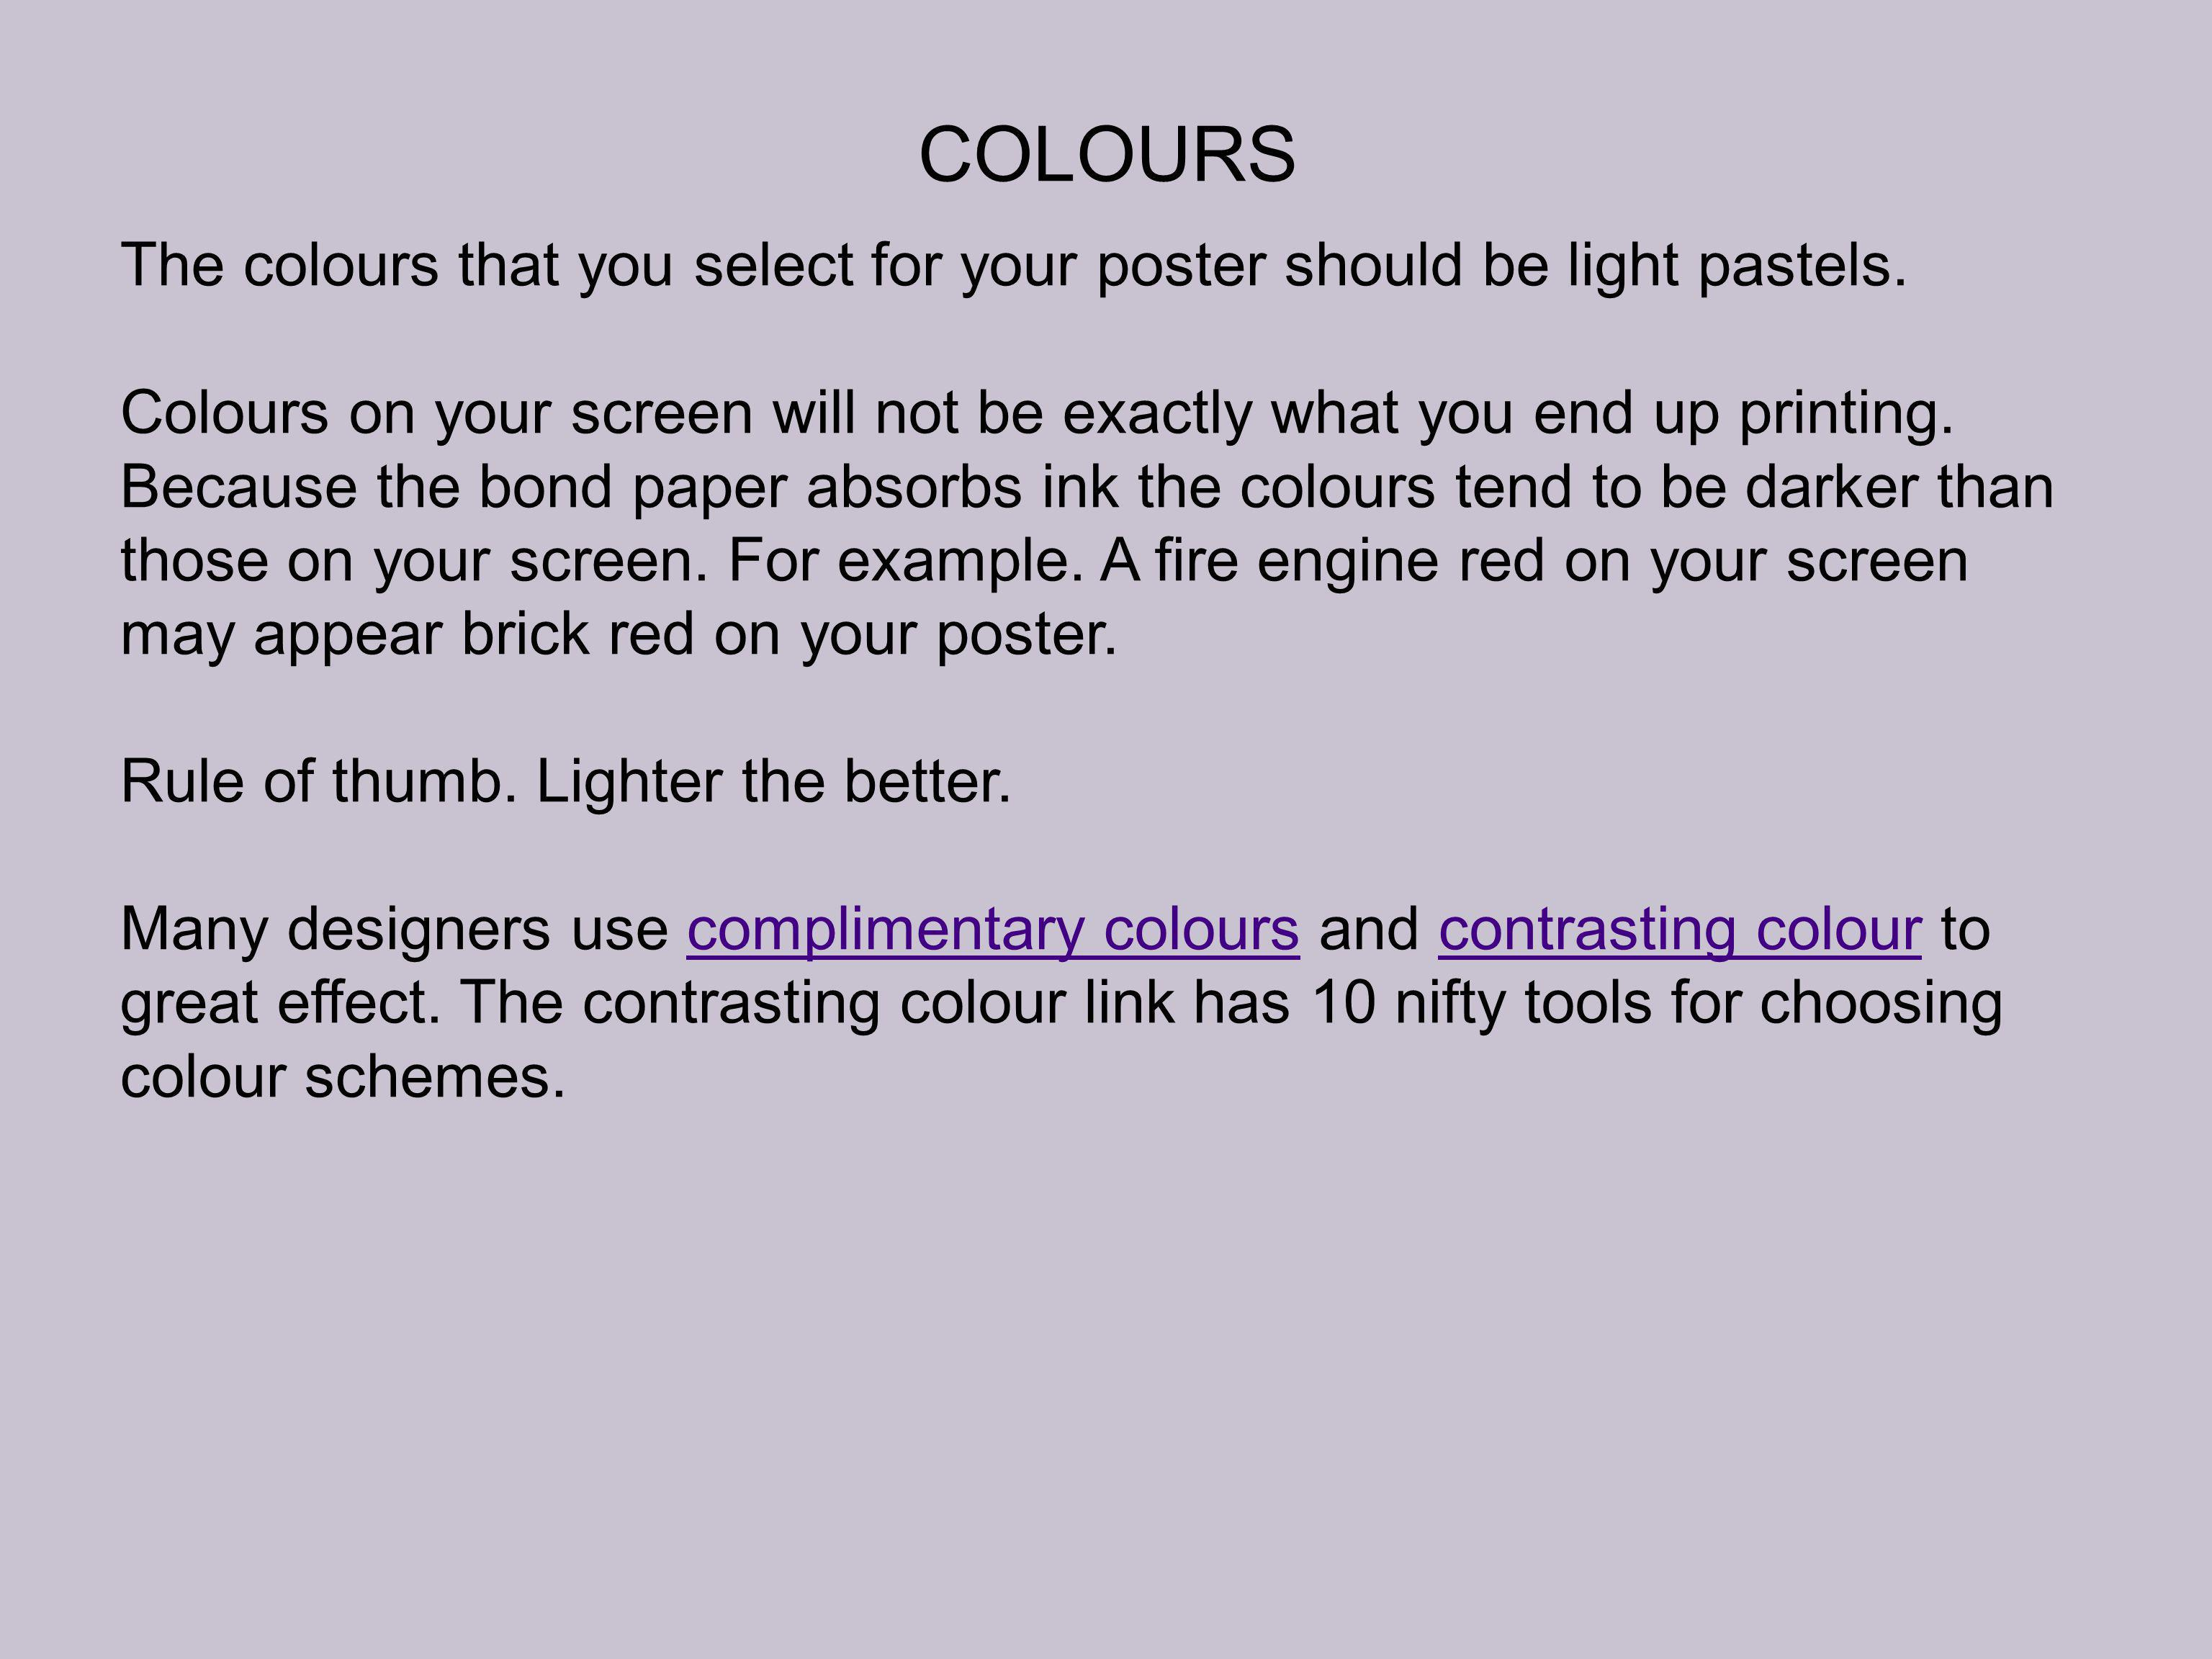 COLOURS The colours that you select for your poster should be light pastels. Colours on your screen will not be exactly what you end up printing. Beca